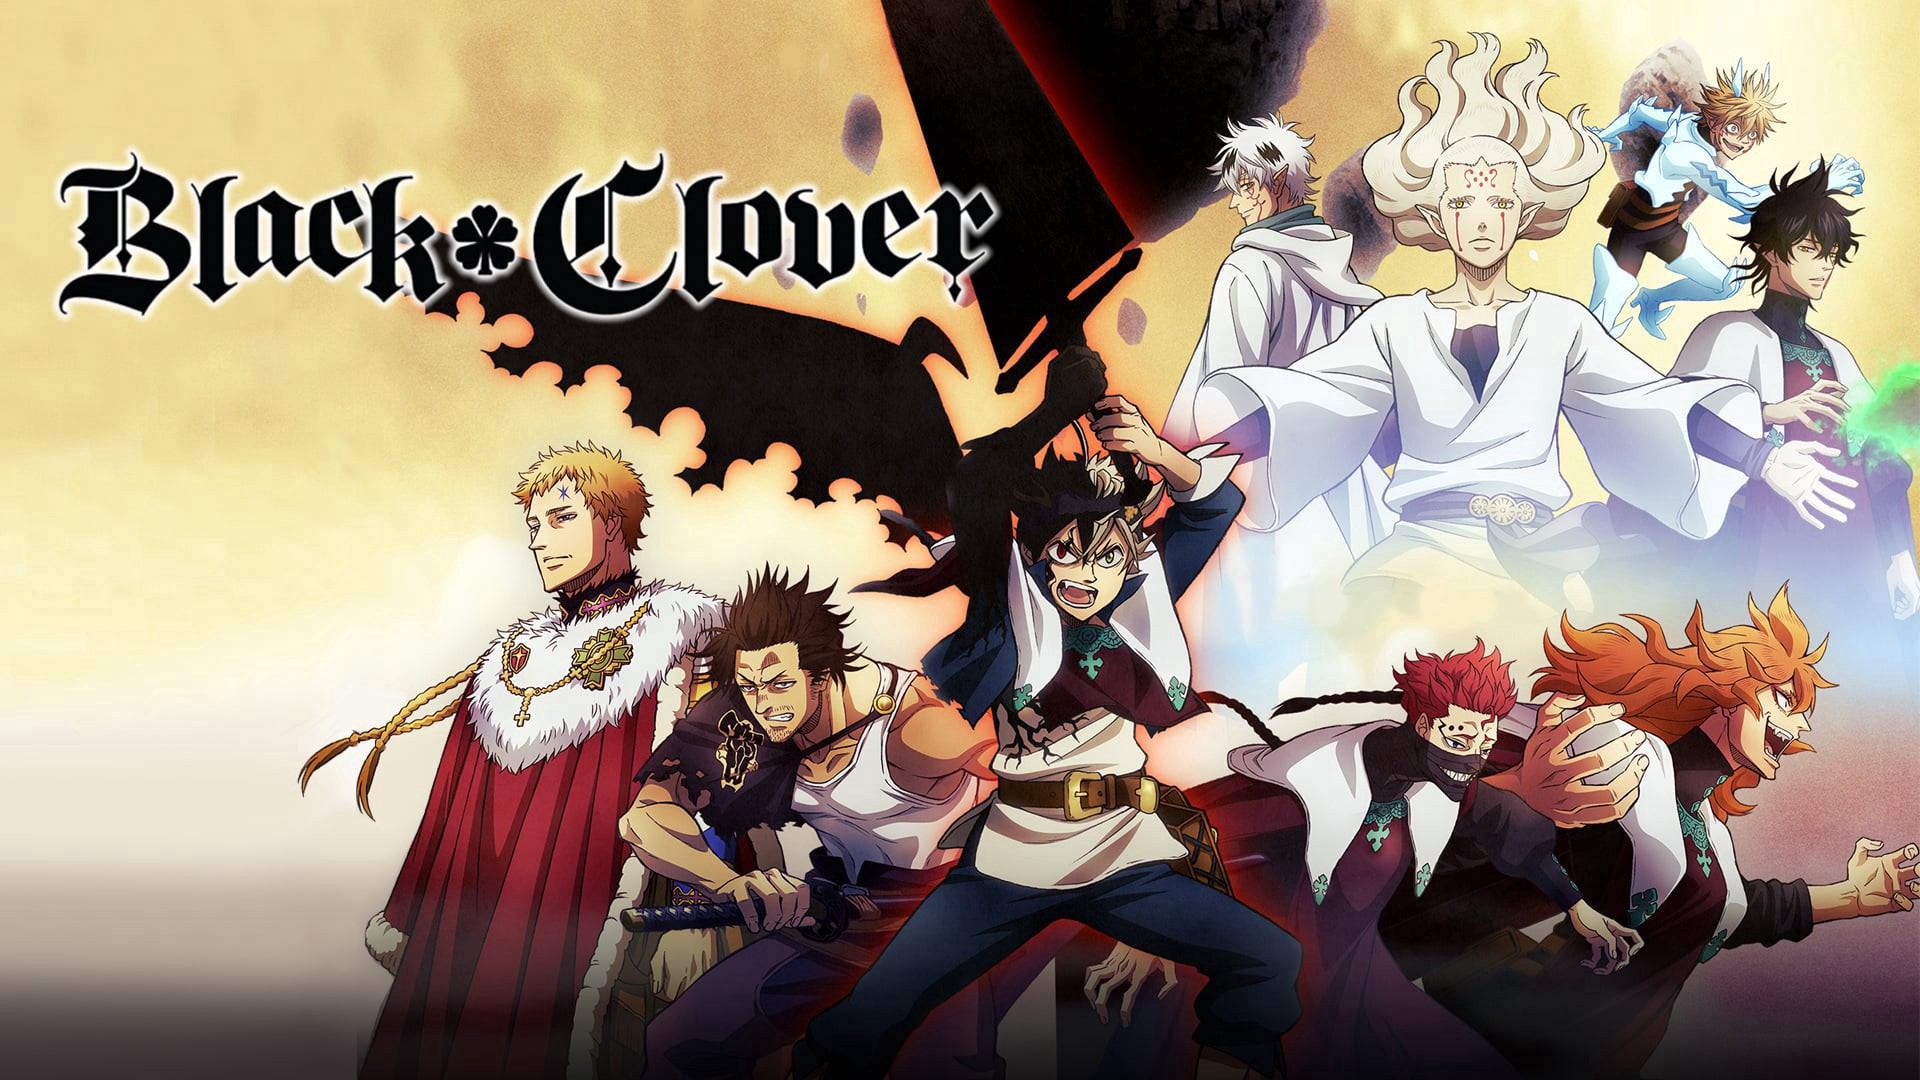 Black Clover Chapter 271 English Release Date and Read Online